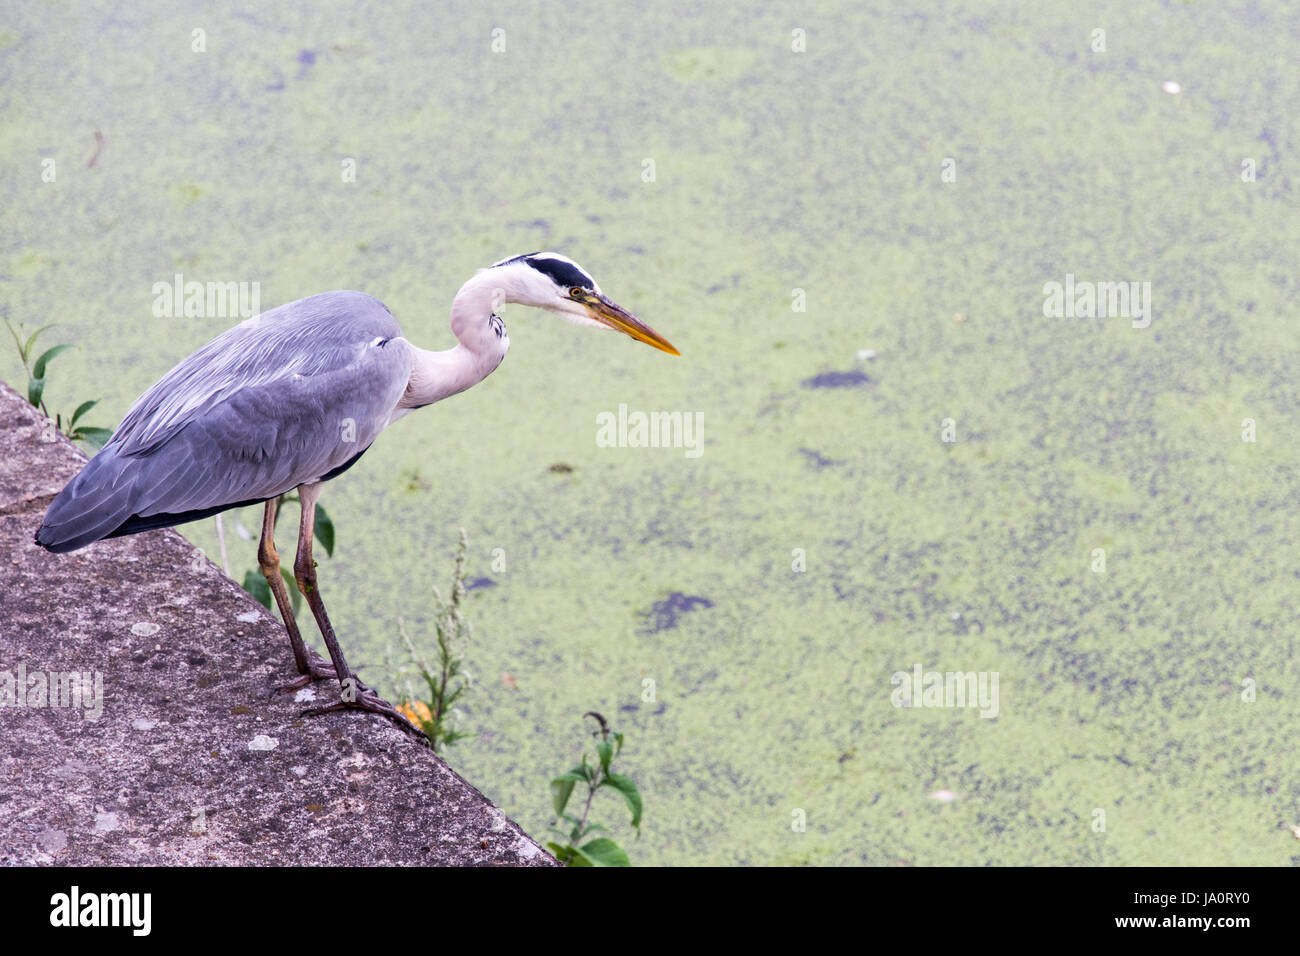 A heron waits for fish on the towpath of the Grand Union Canal at Ladbroke Grove in West London. - Stock Image